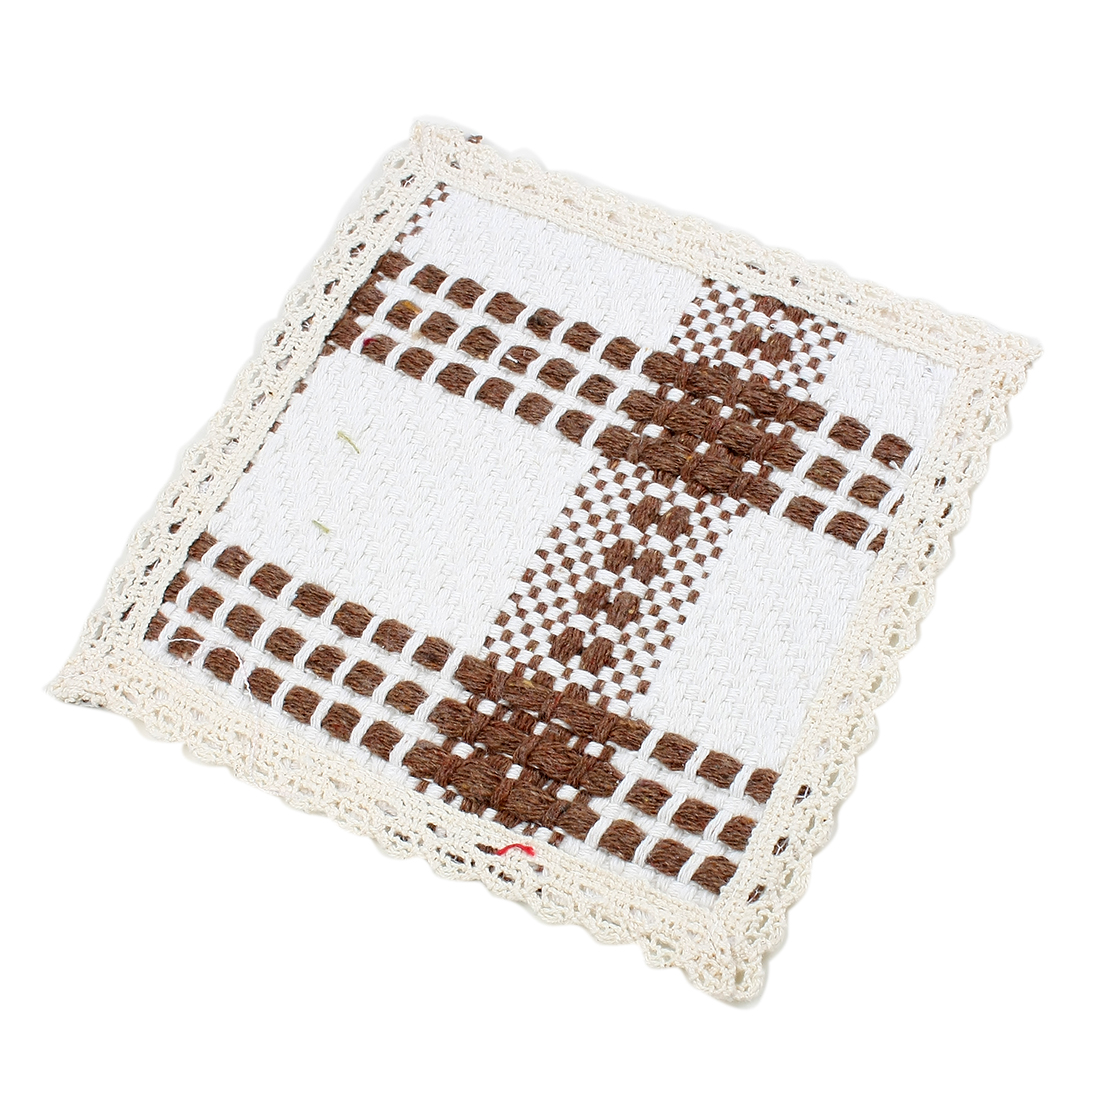 Cotton Grid Heat Resistant Cup Mat Pad Coaster Placemat Coffee Color